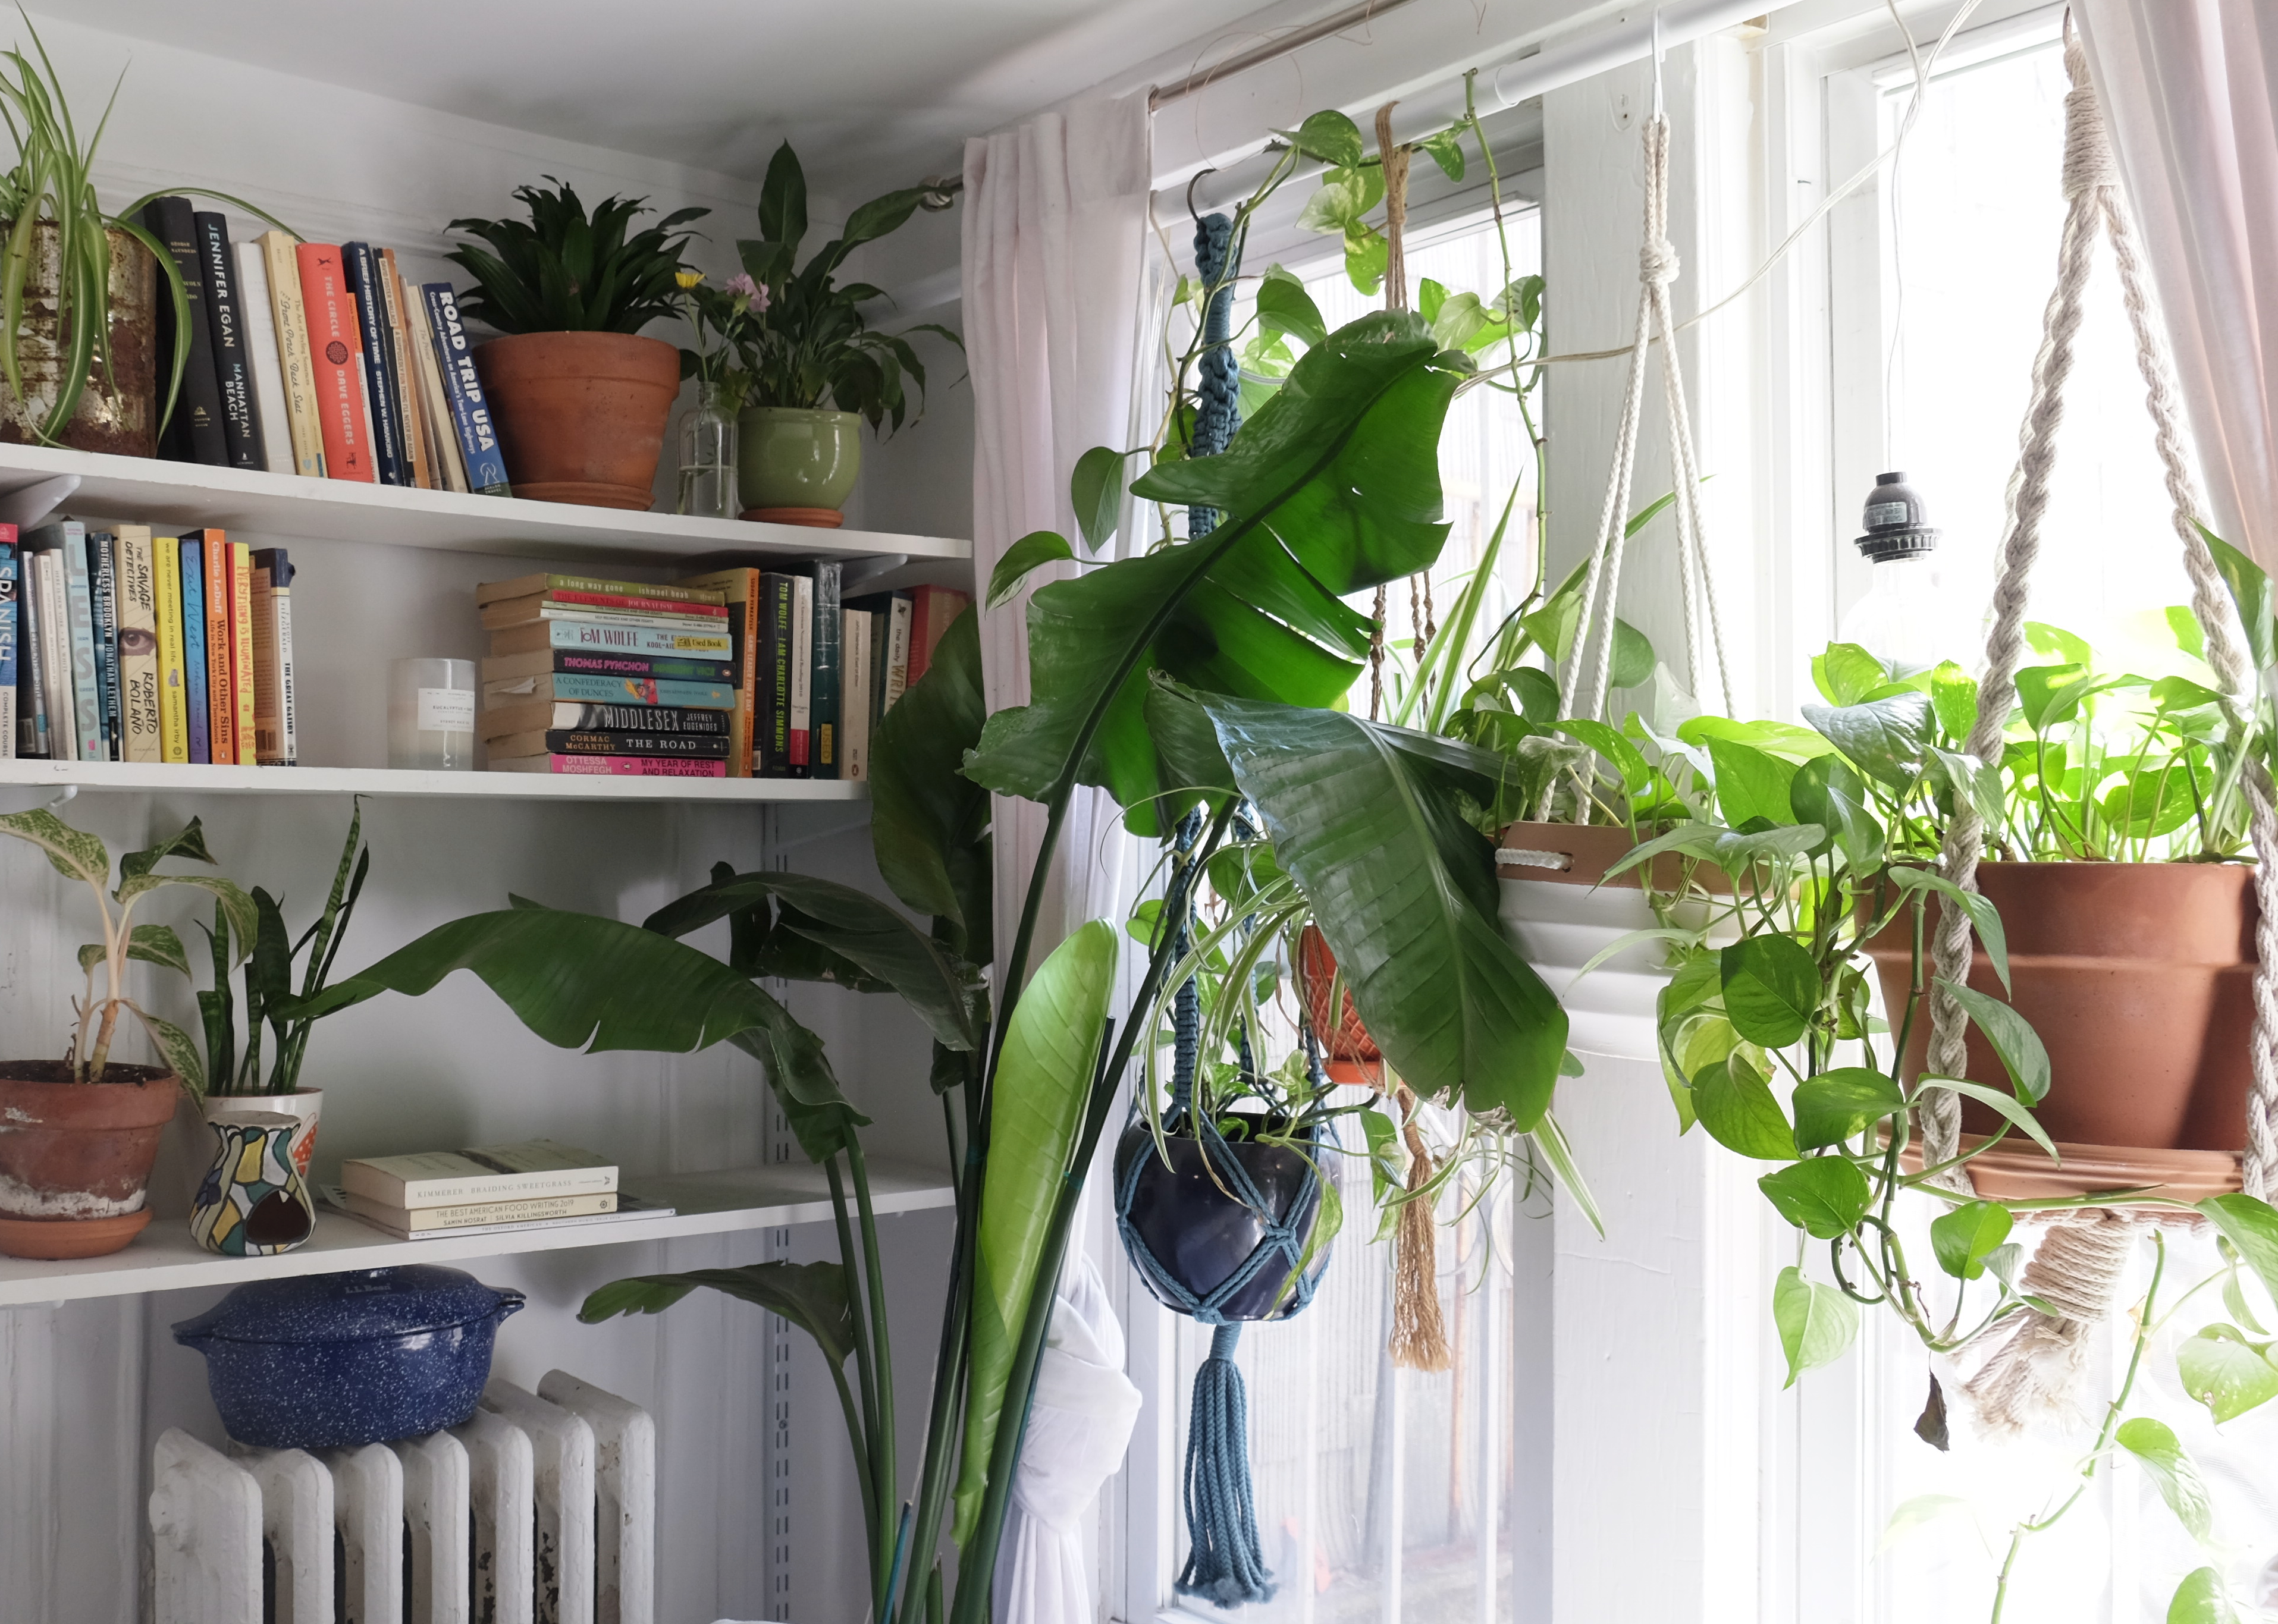 Hanging plants near a window. White shelves built into the wall contain books.